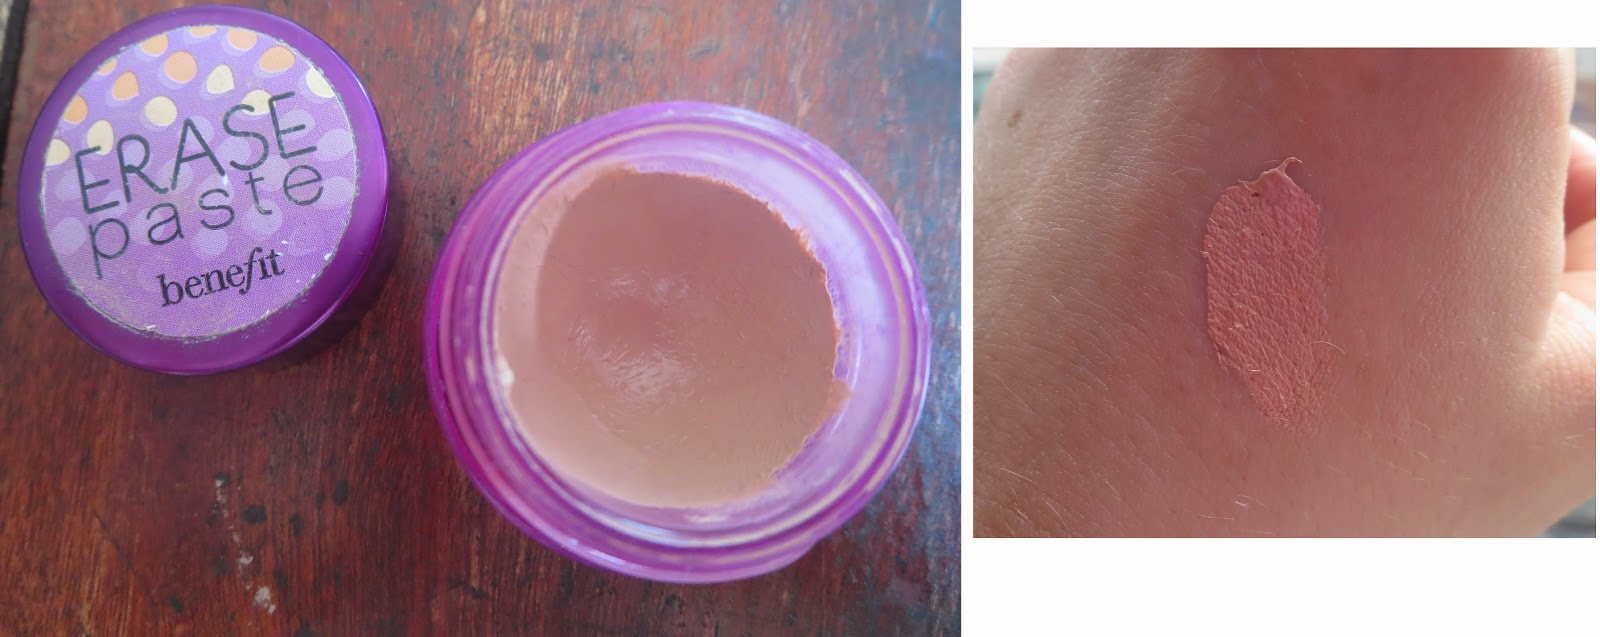 a picture of Benefit Erase Paste